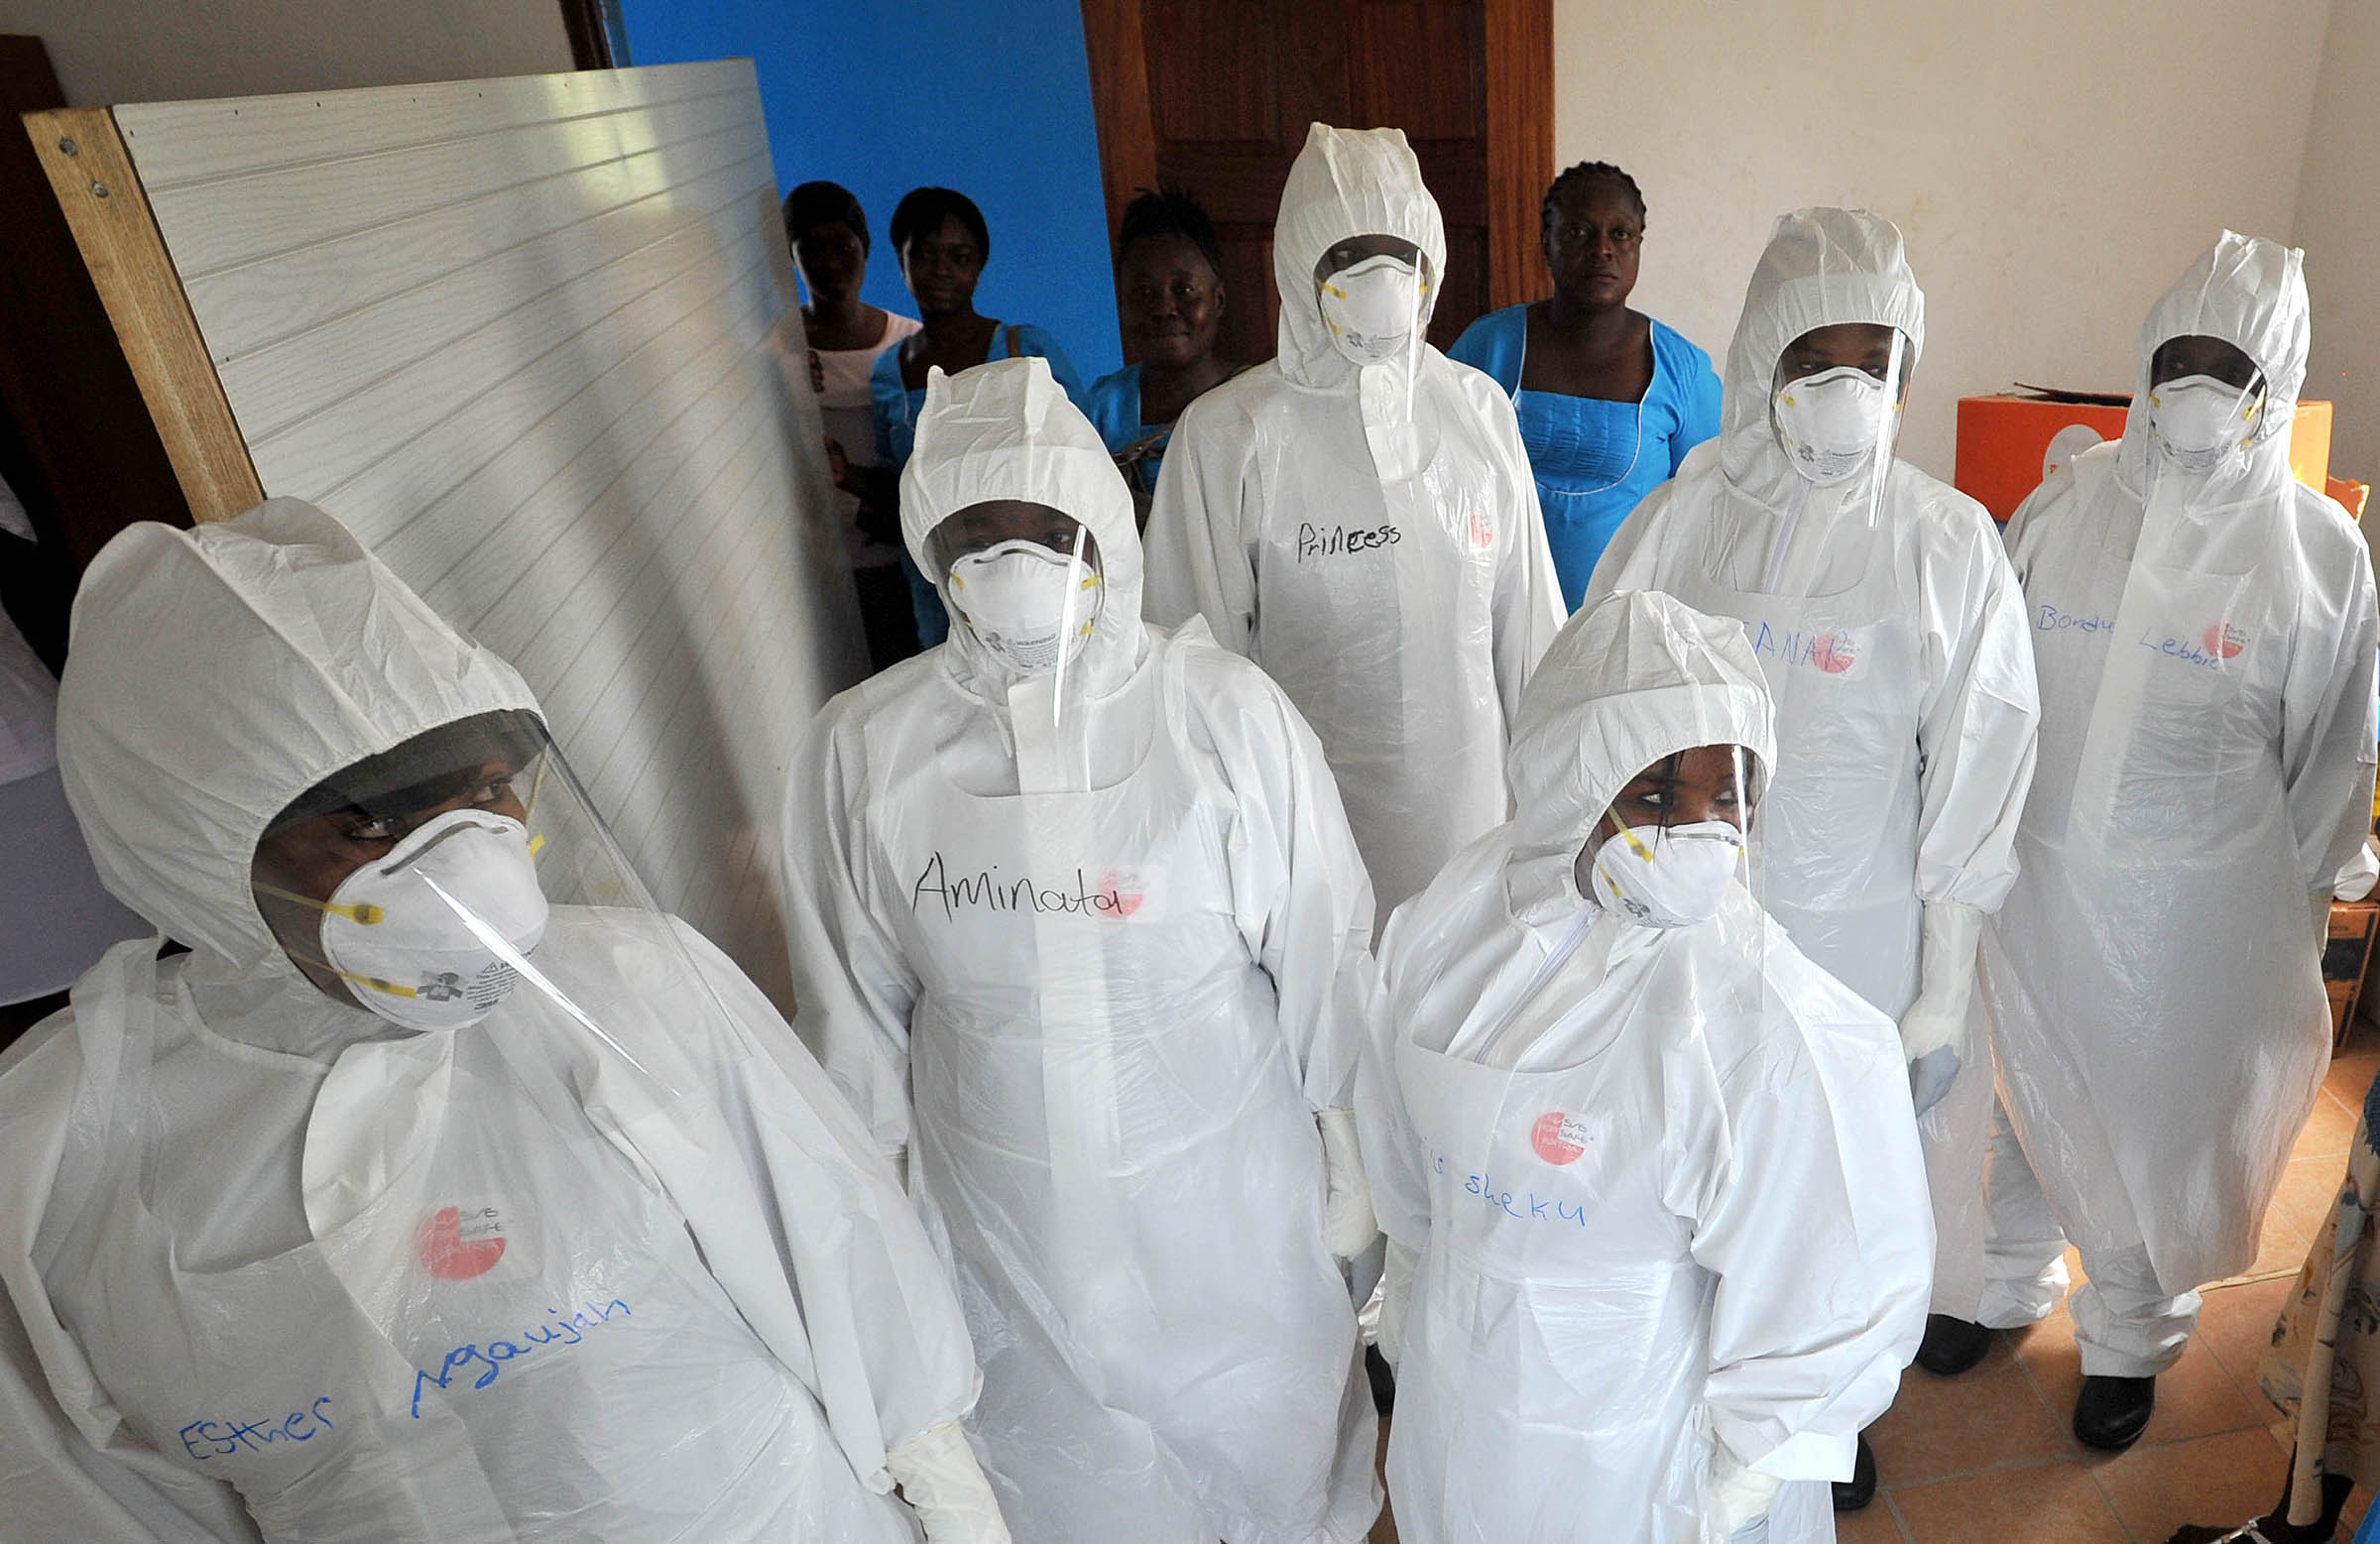 Sierra Leone: Ebola, Maternal Care and Willy Wonka | Pulitzer Center